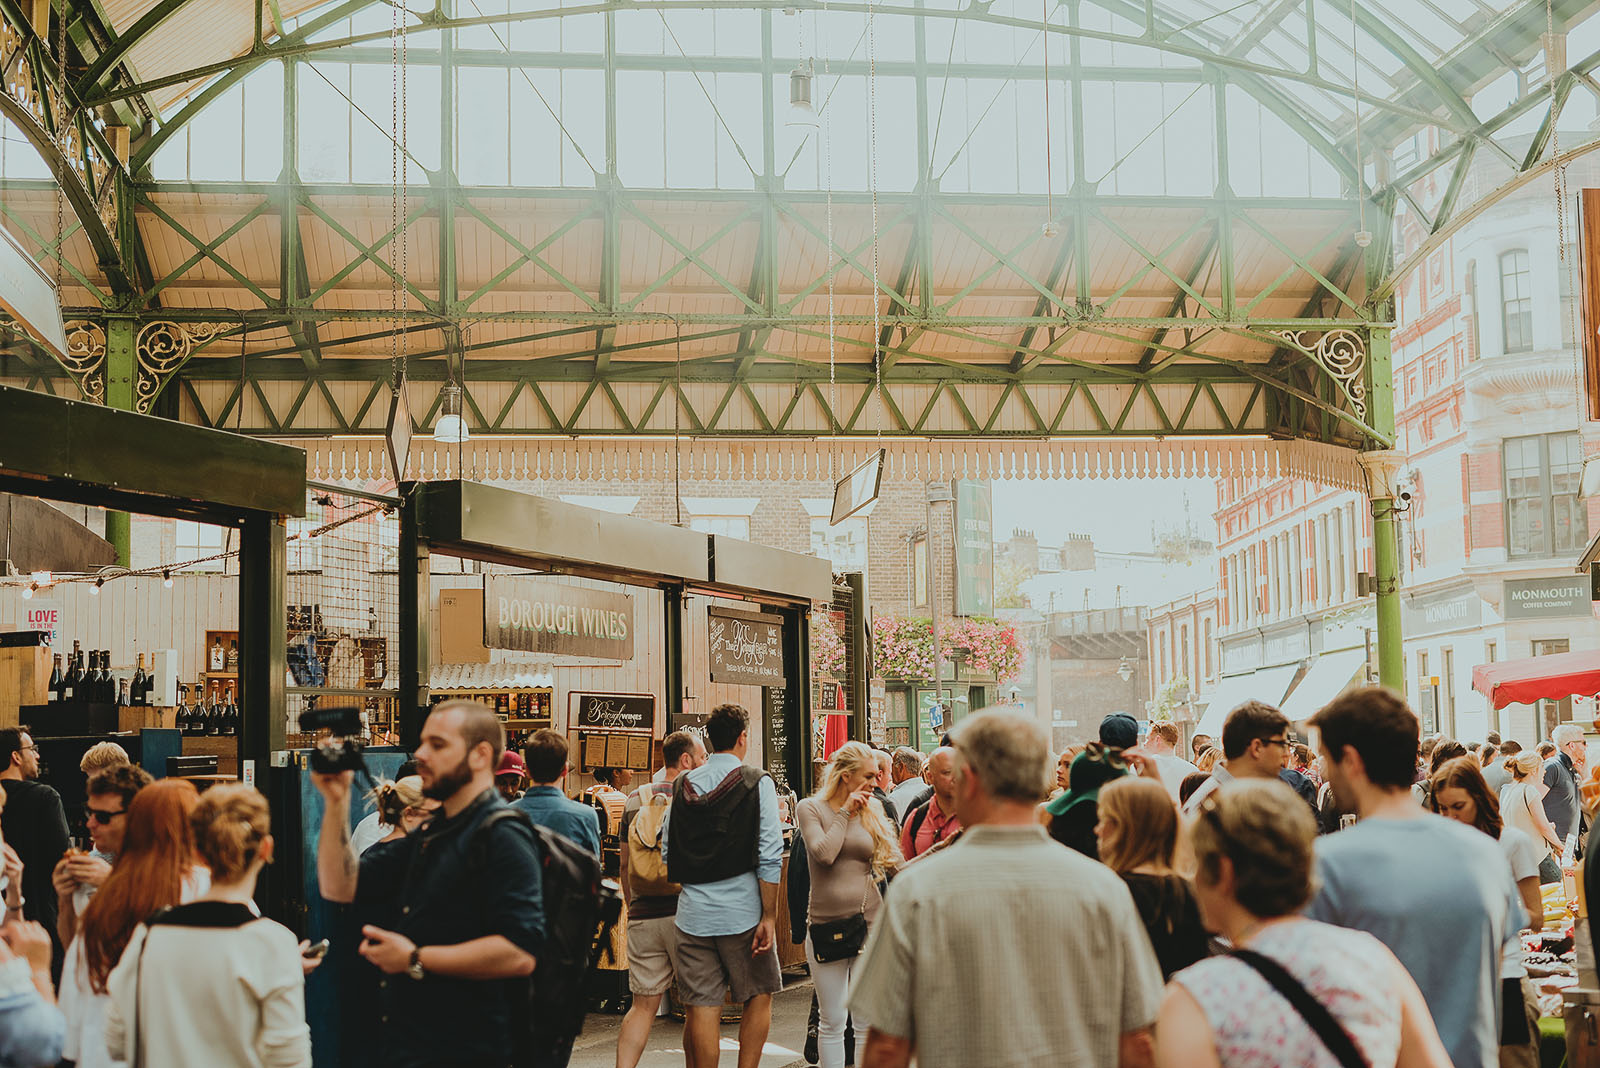 Borough Market, London Bridge, United Kingdom